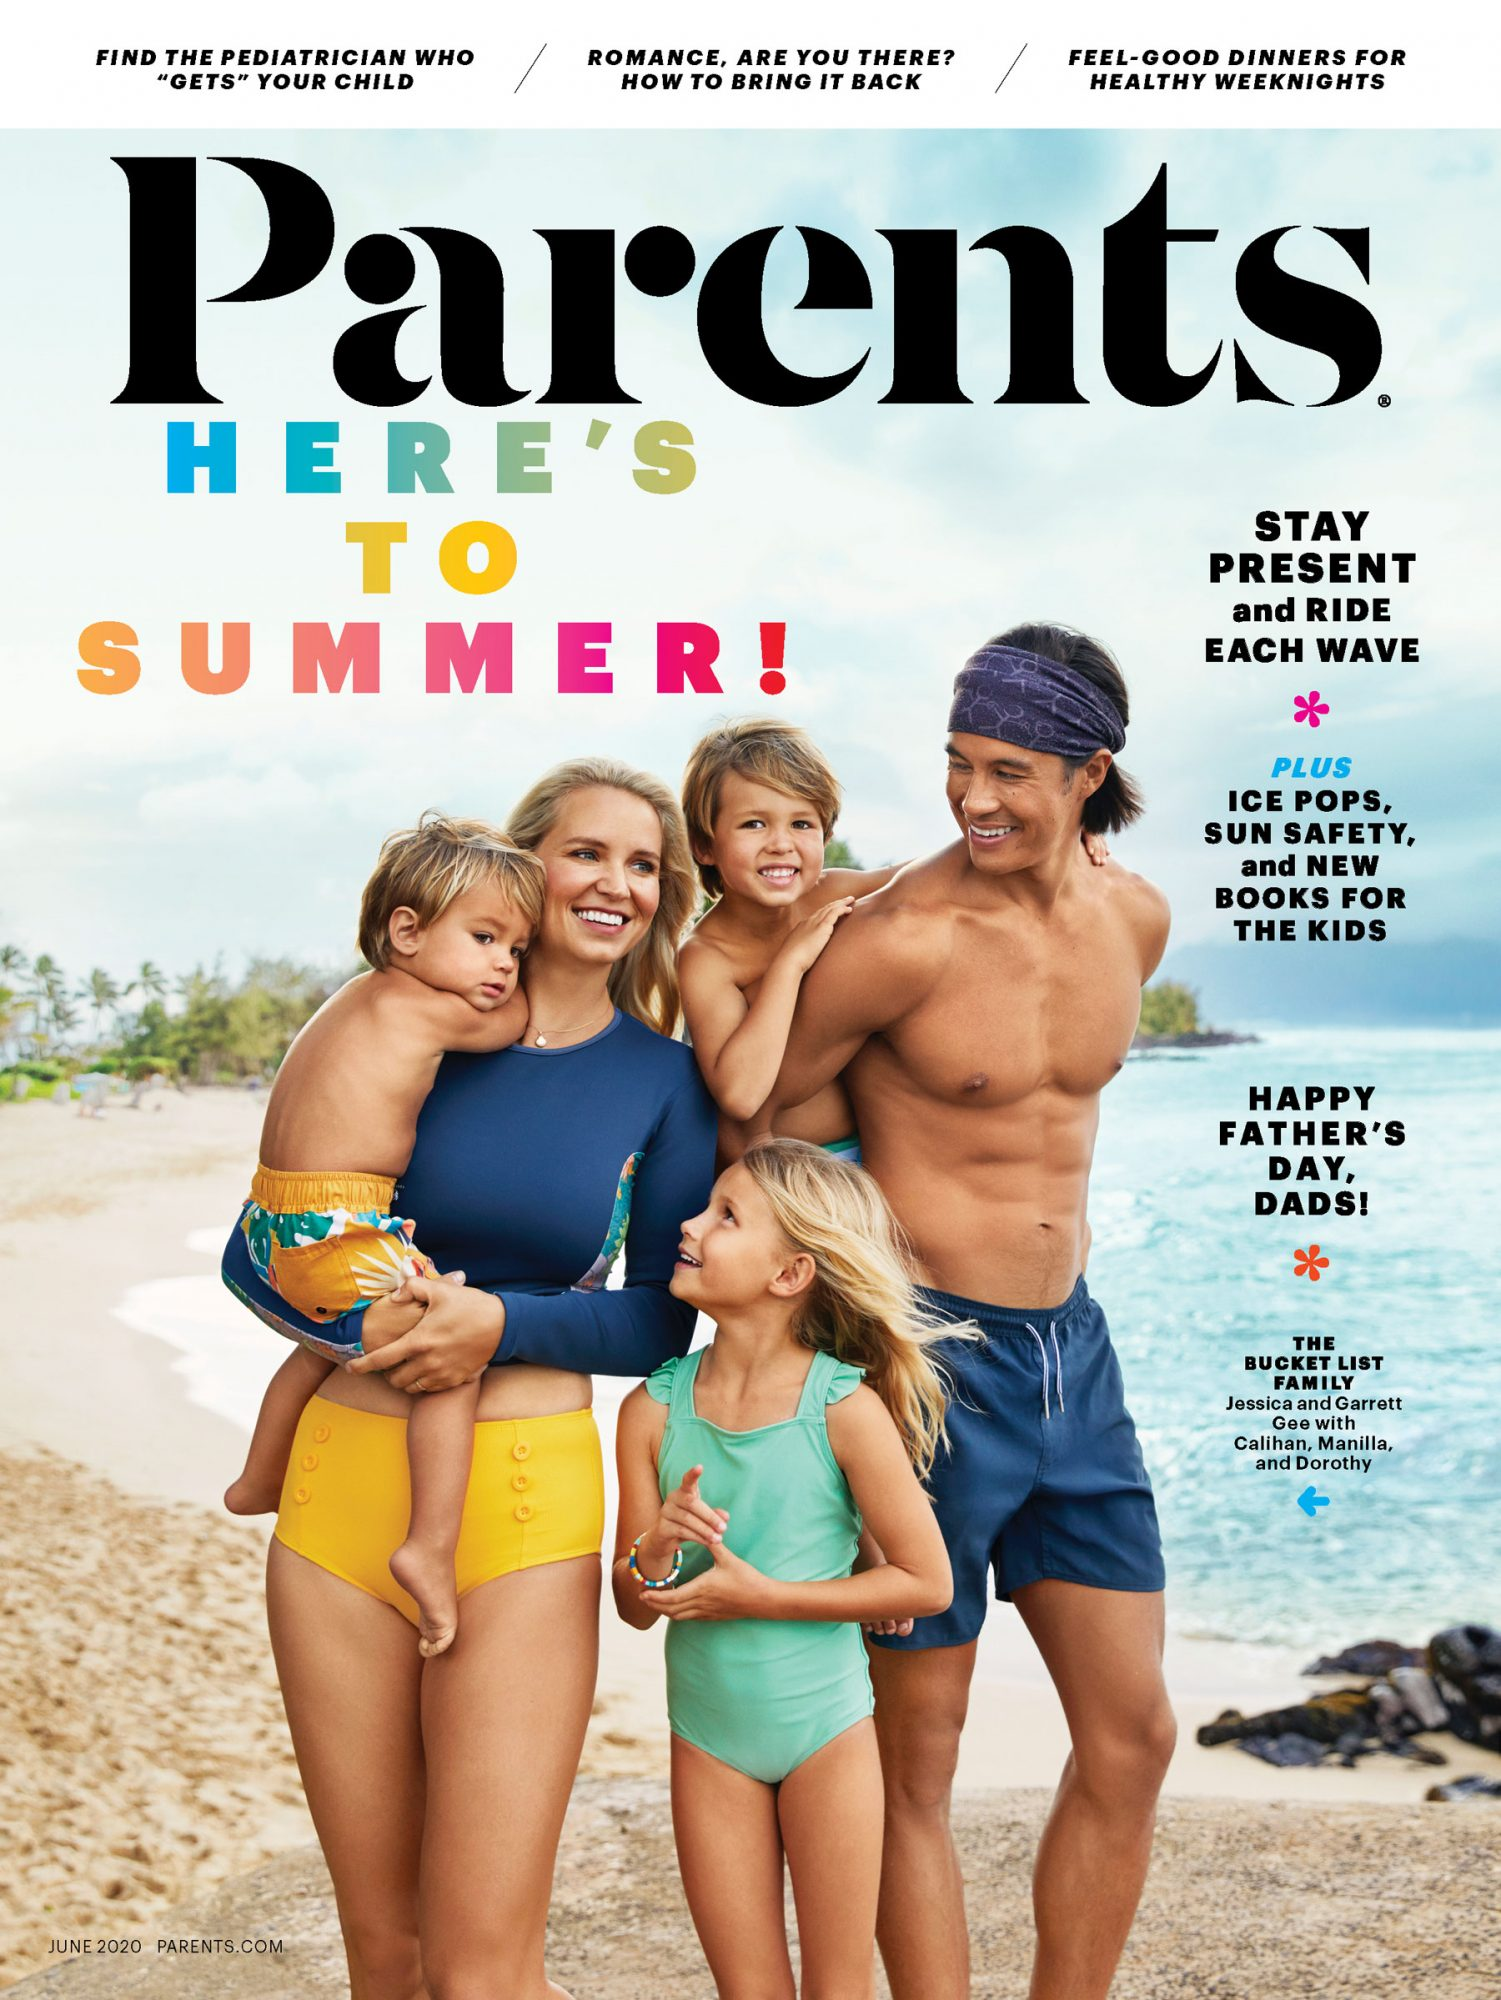 The Bucket List Family - Parents Magazine - June 2020